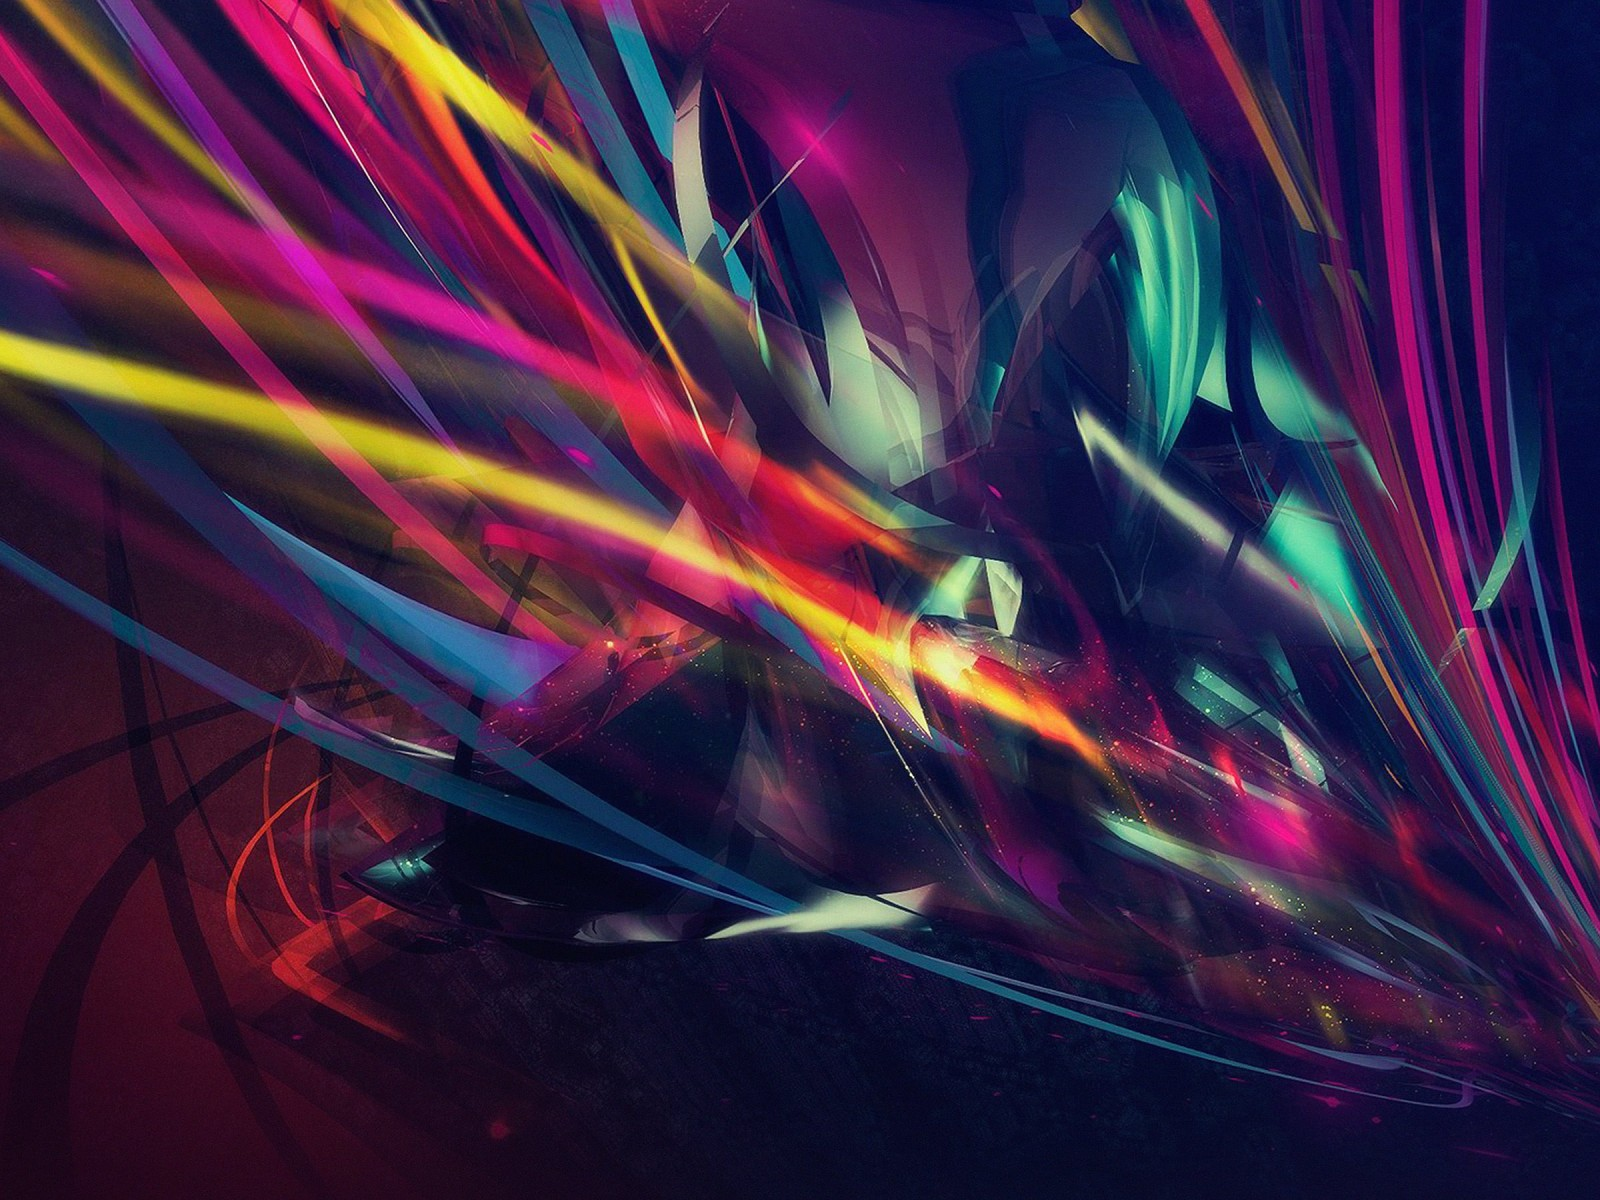 Abstract Multi Color Lines Wallpaper for Desktop 1600x1200